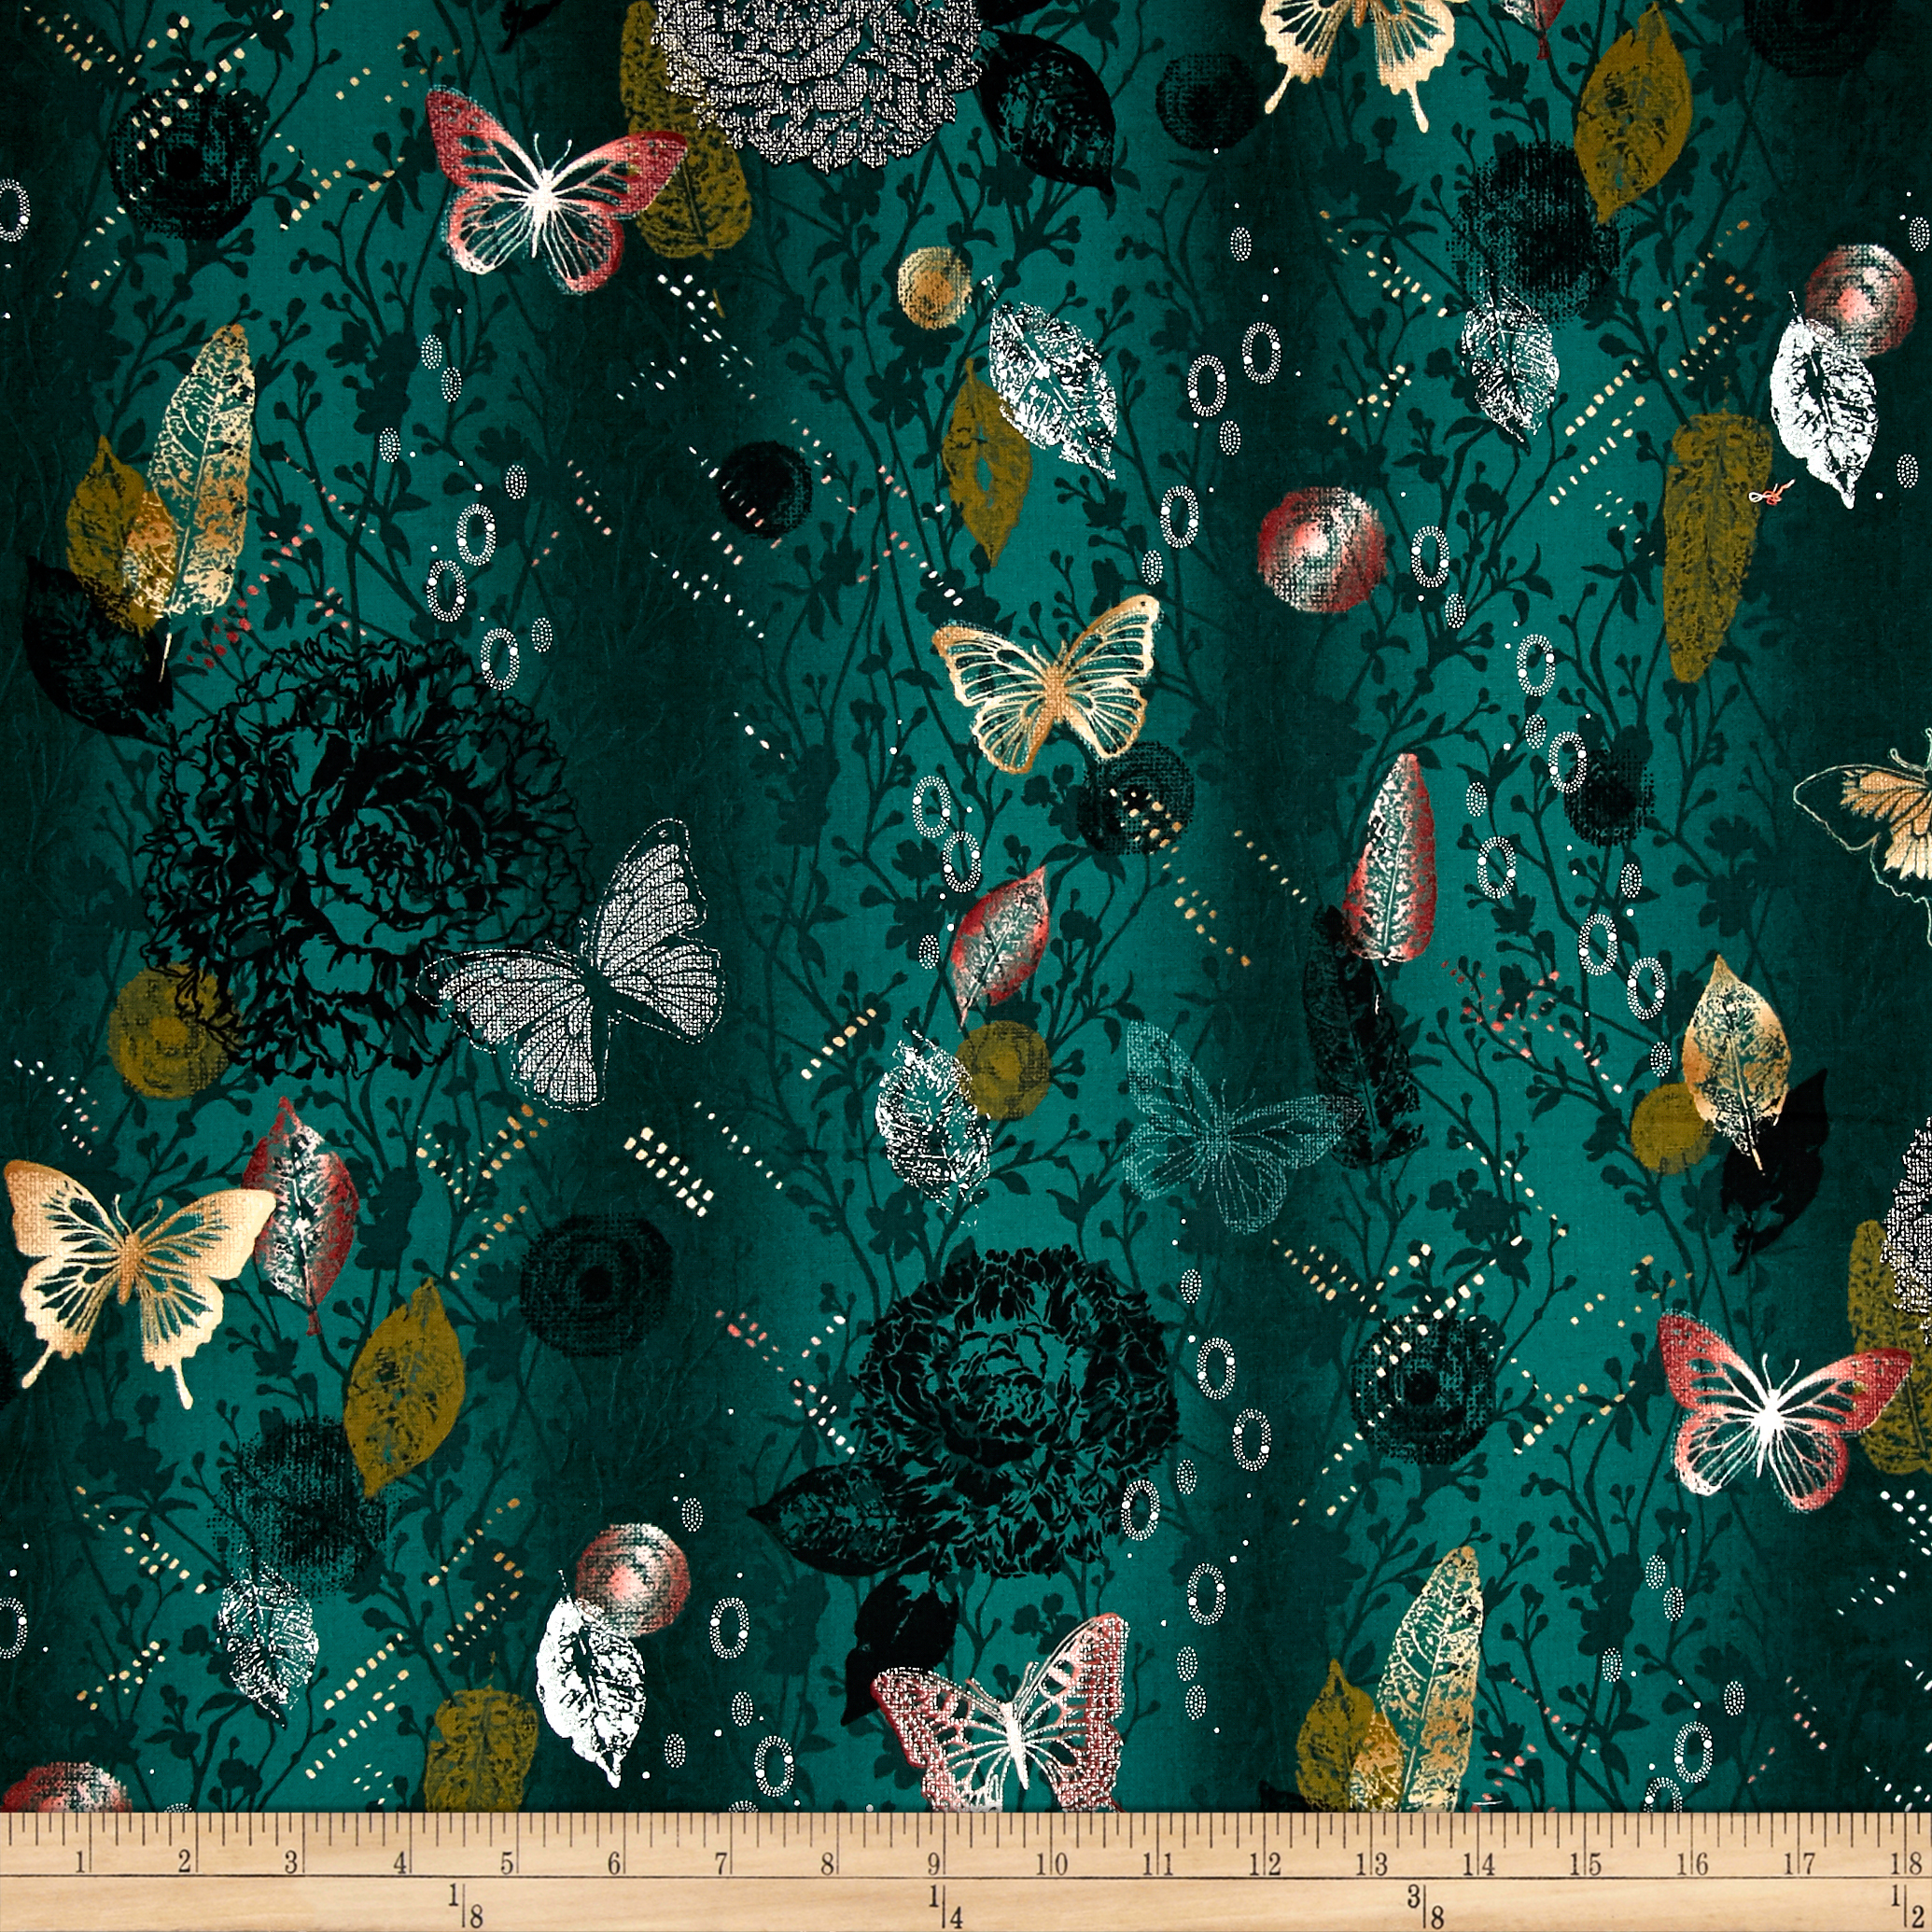 Shiny Objects Metallic Menagerie Creek Fabric by RJR in USA